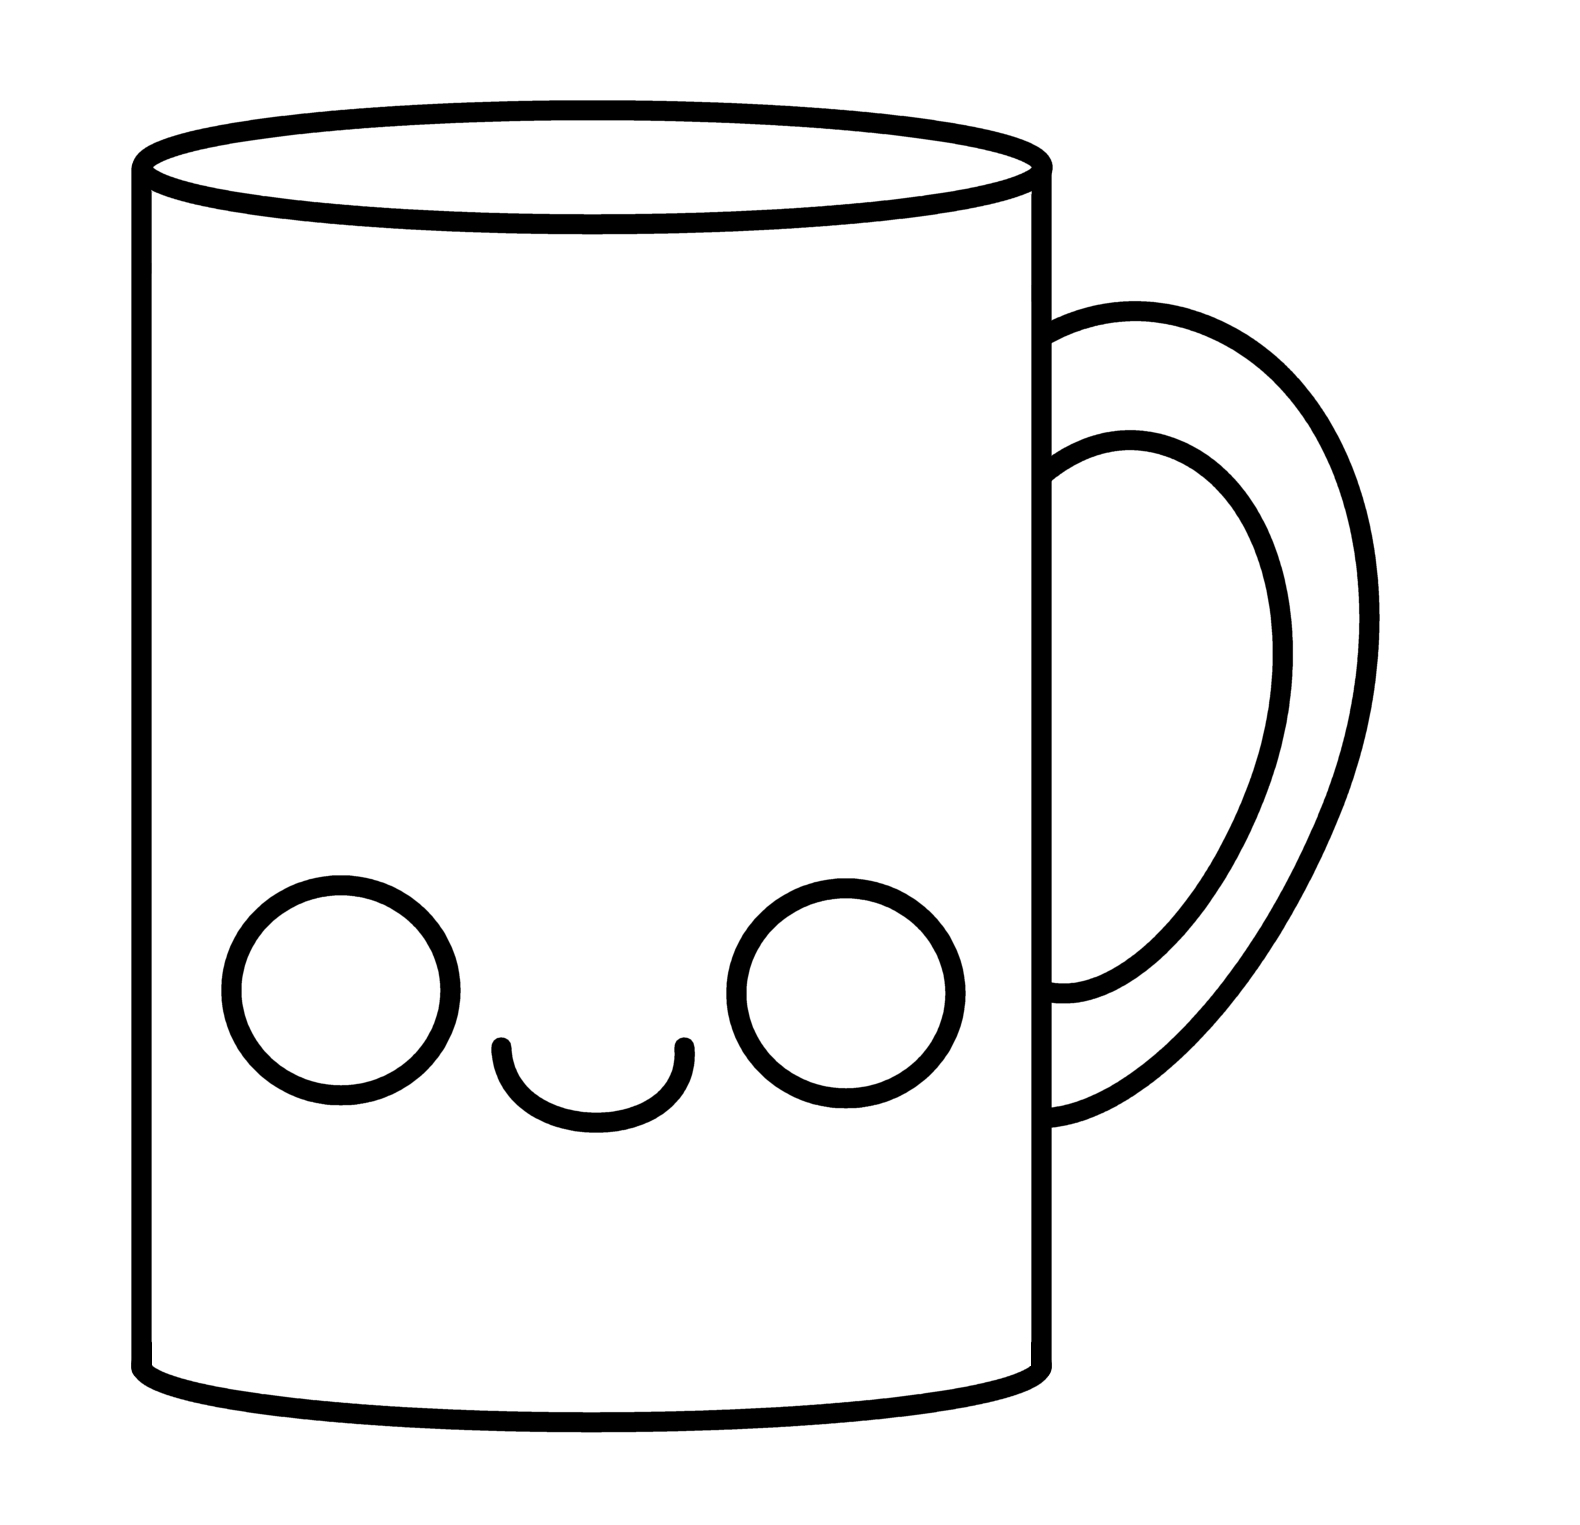 How to Draw a Cartoon Cup of Coffee Cute and Easy with